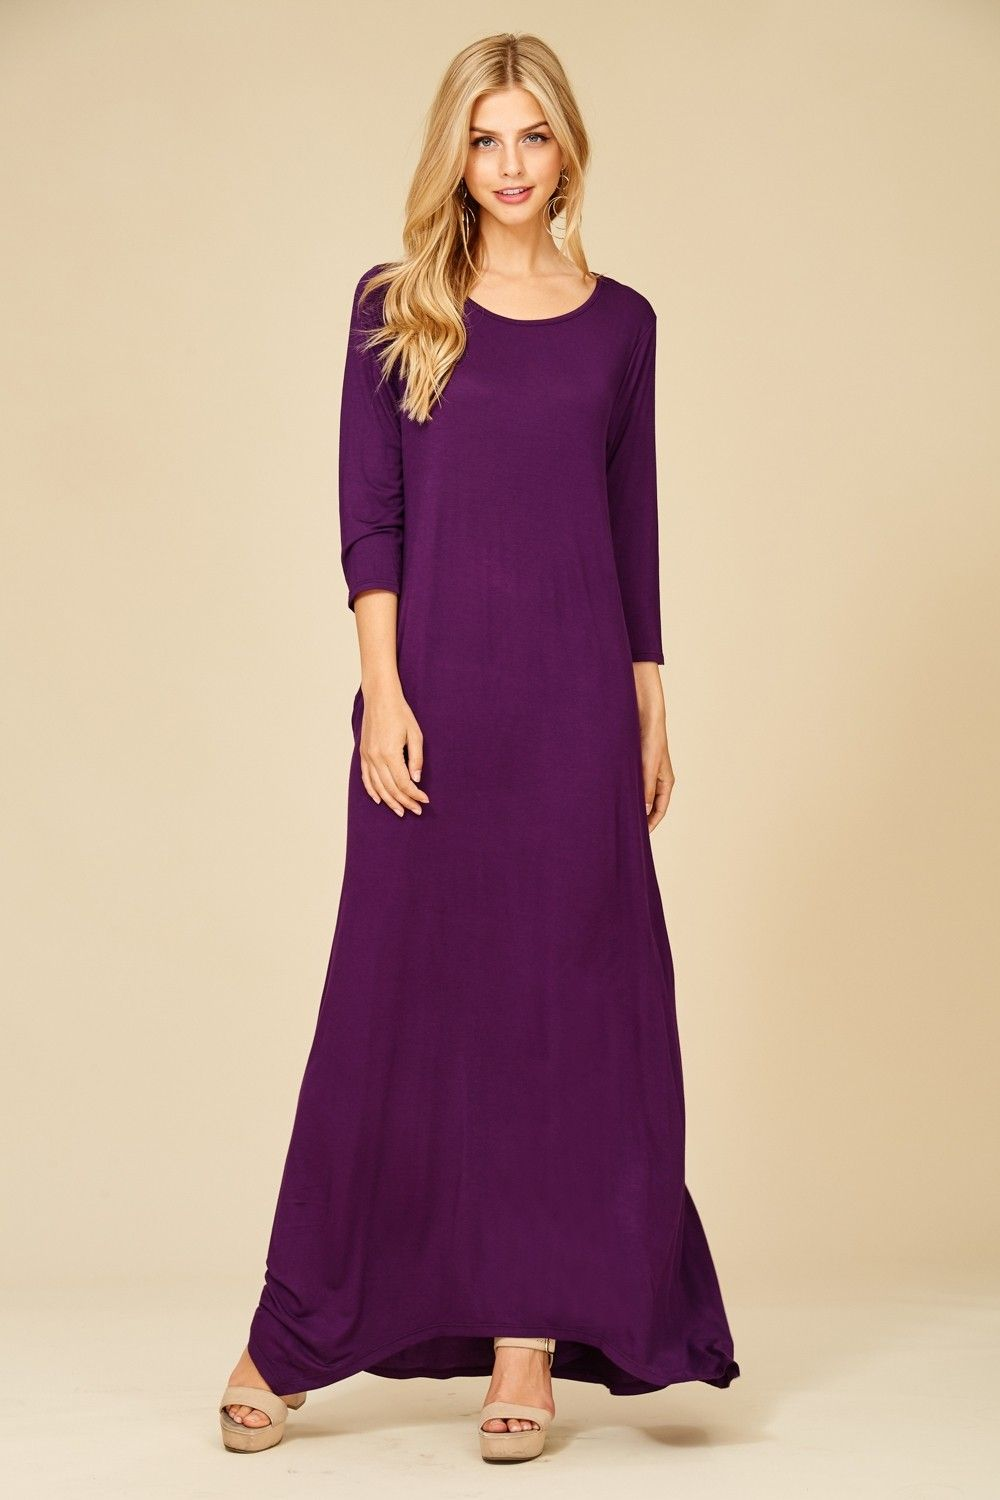 3 4 Sleeve Maxi Dress Style D5212 Knit Dress Featuring Solid 3 4 Sleeves Round Neck Side Pockets M Maxi Dress With Sleeves Womens Maxi Dresses Maxi Dress [ 1500 x 1000 Pixel ]